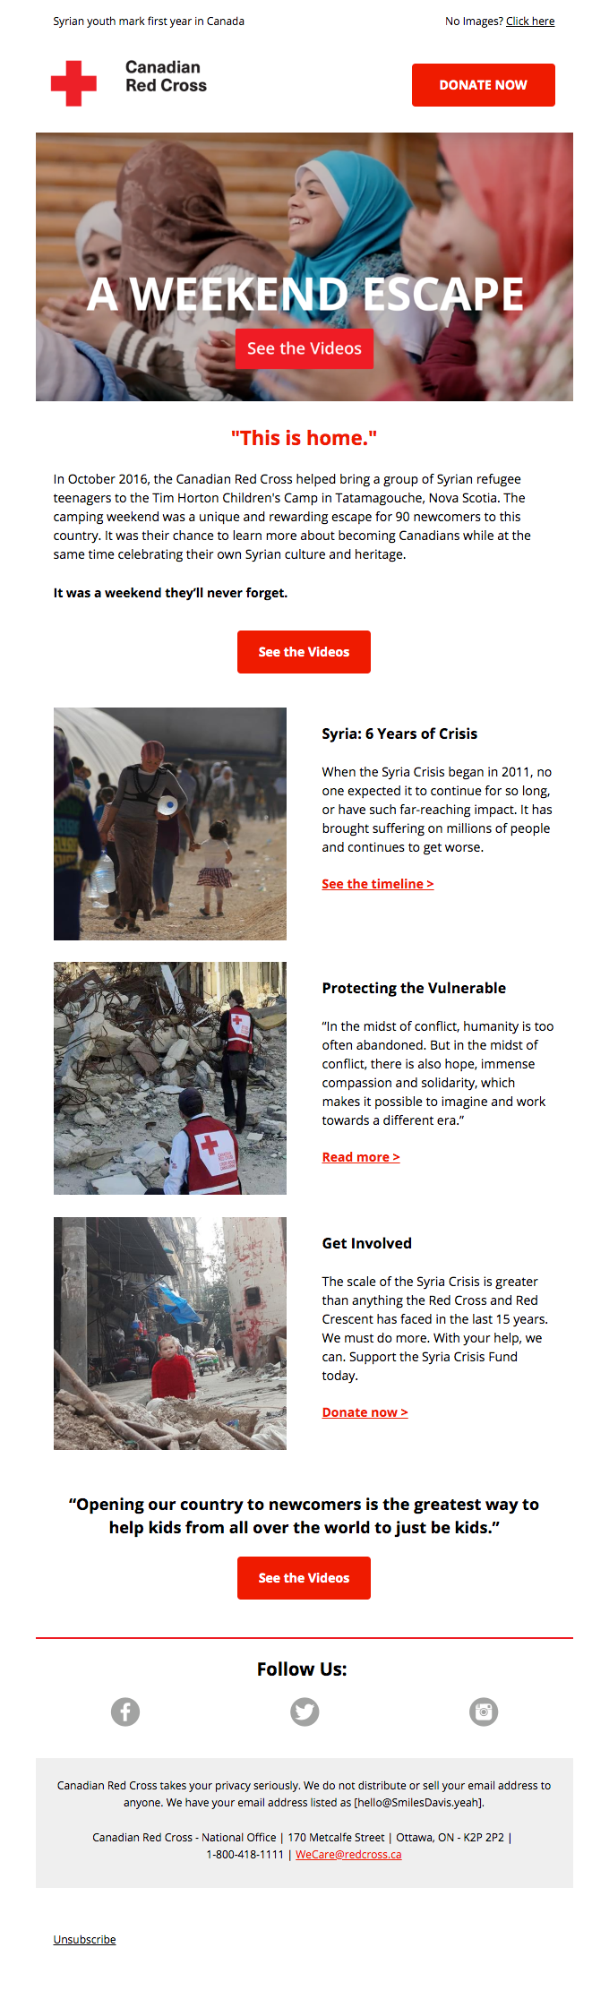 Example of storytelling used in an email marketing campaign from the Canadian Red Cross